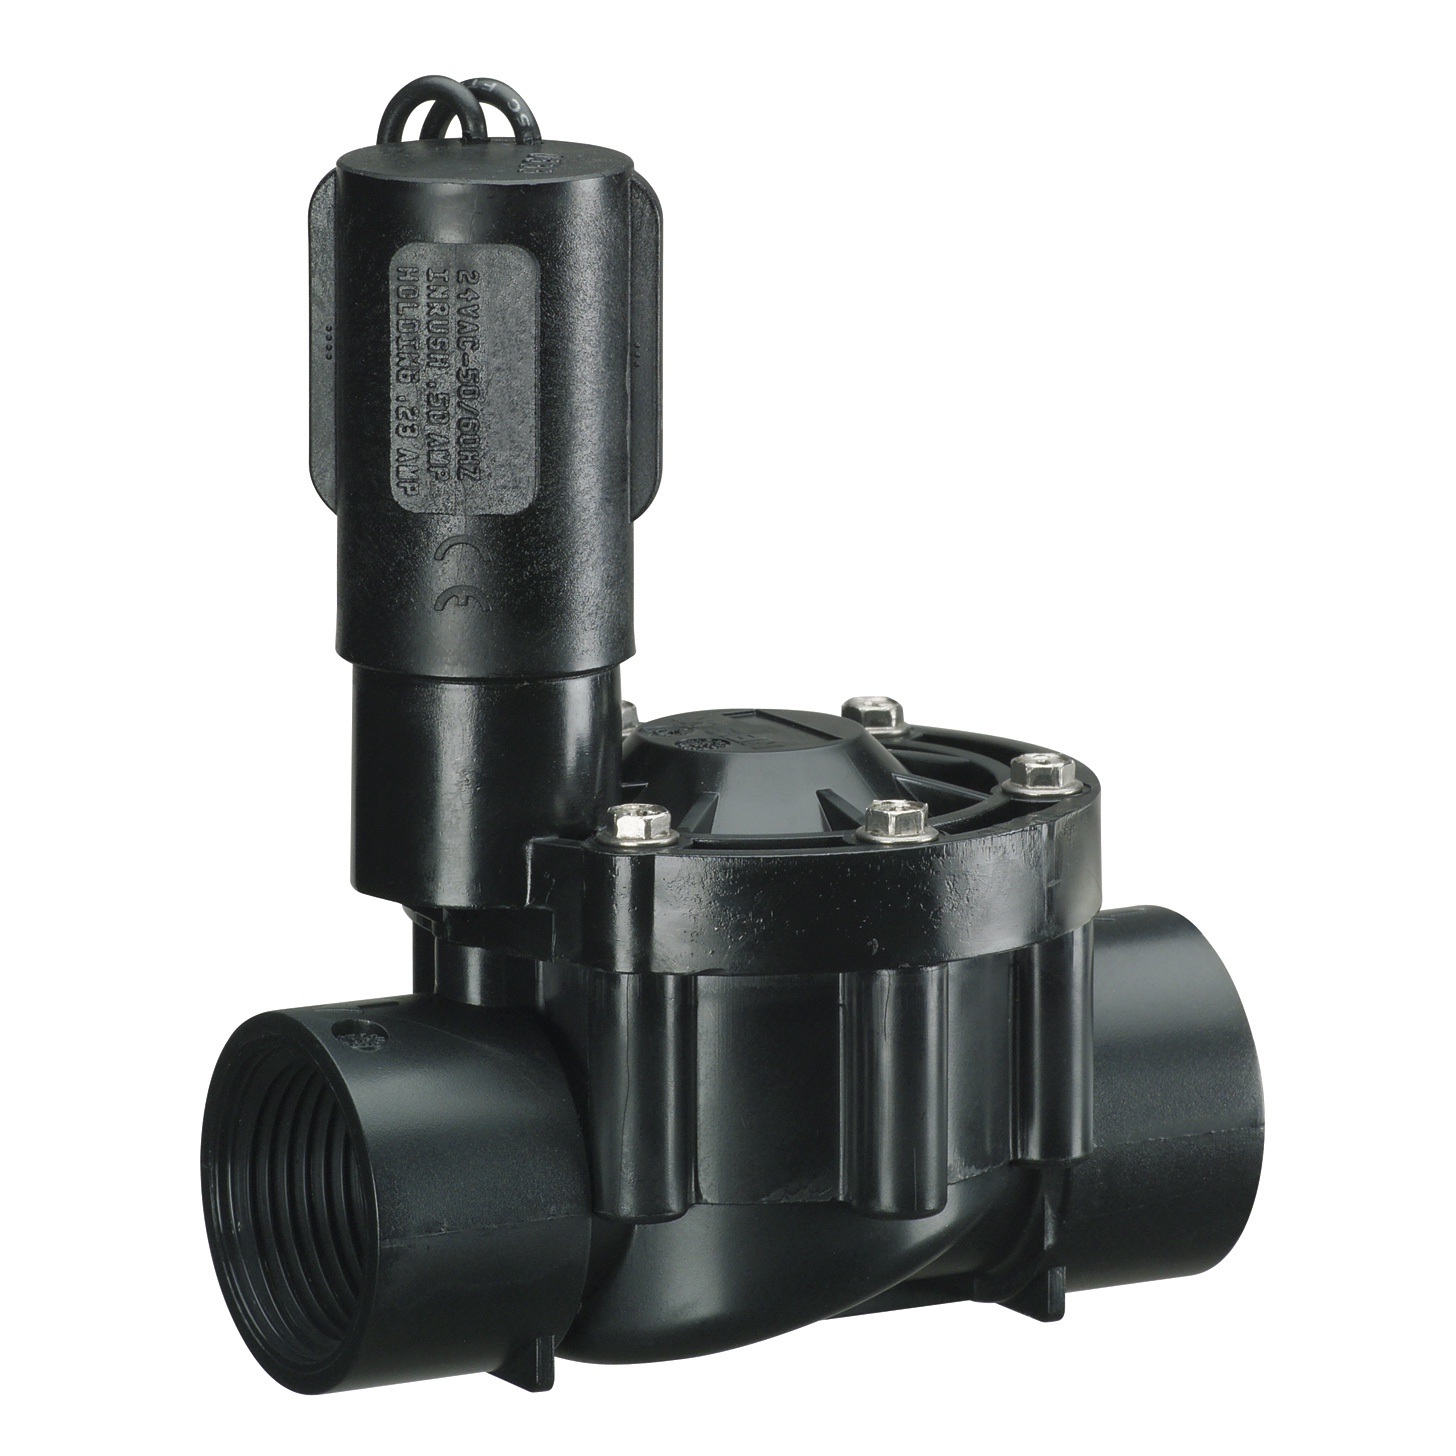 Signature 9000 Series Valves